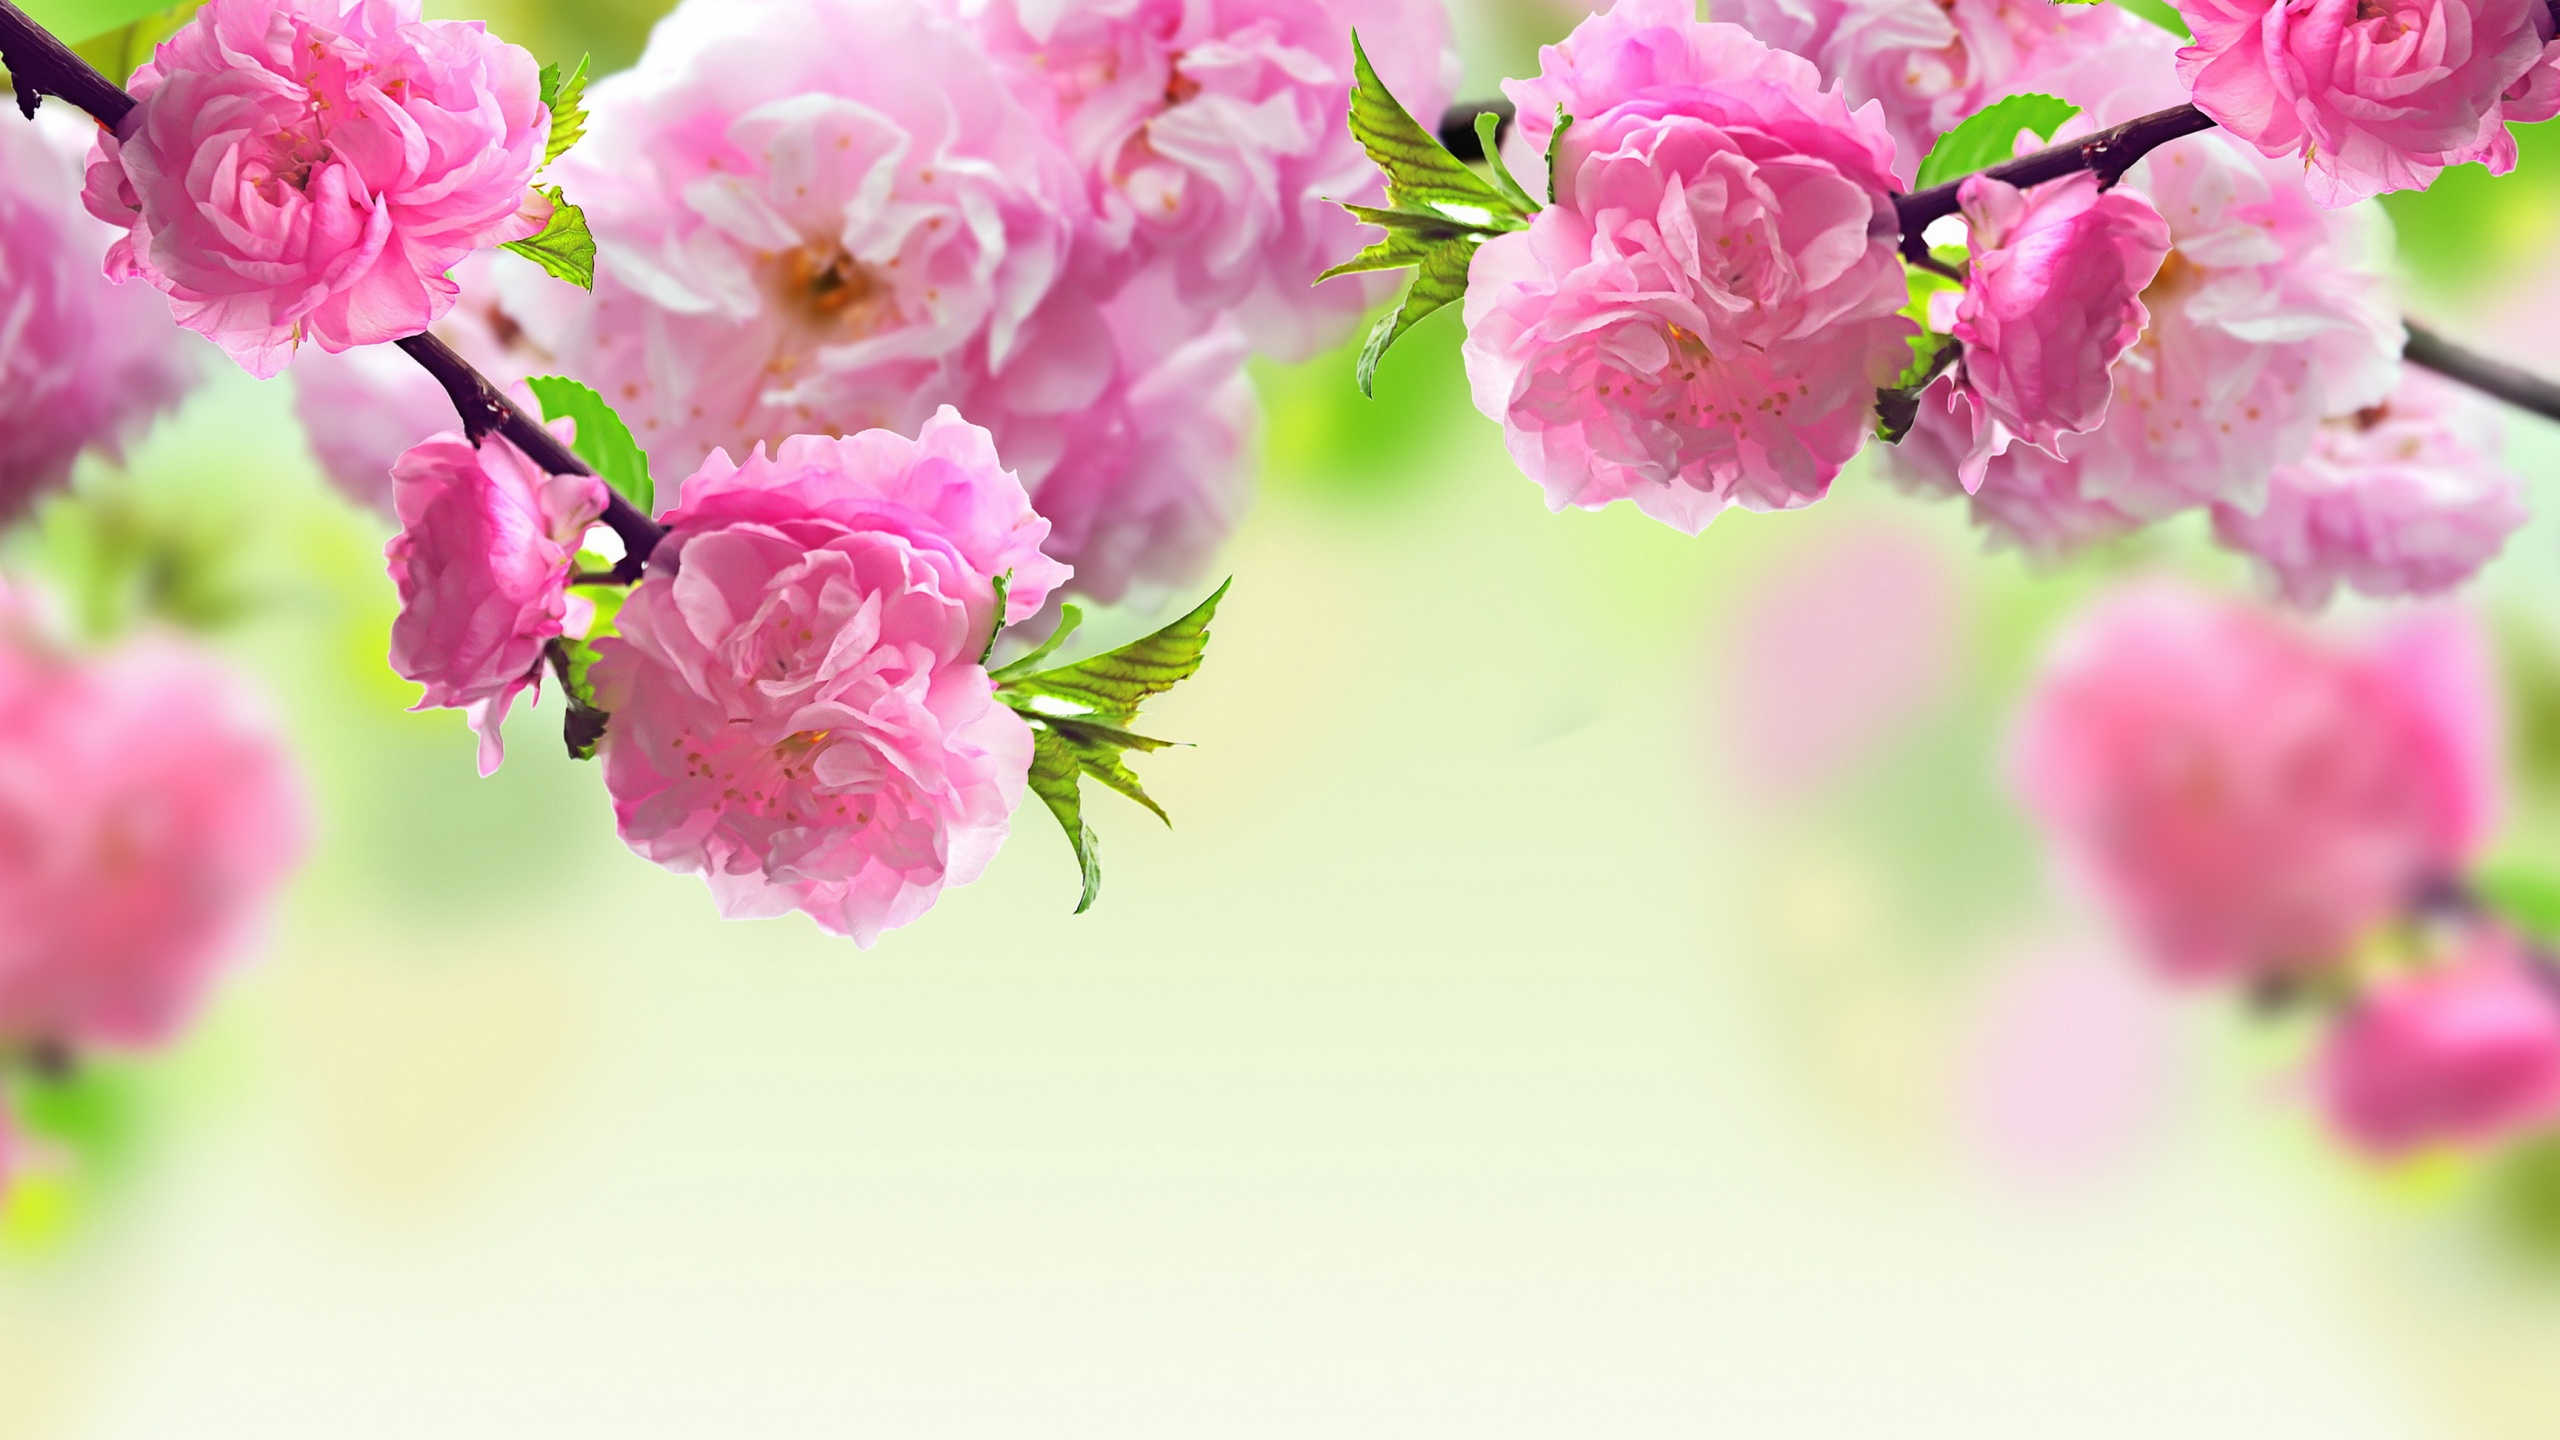 Flower wallpaper border 24 free hd wallpaper hdflowerwallpaper flower wallpaper border 24 free hd wallpaper mightylinksfo Image collections